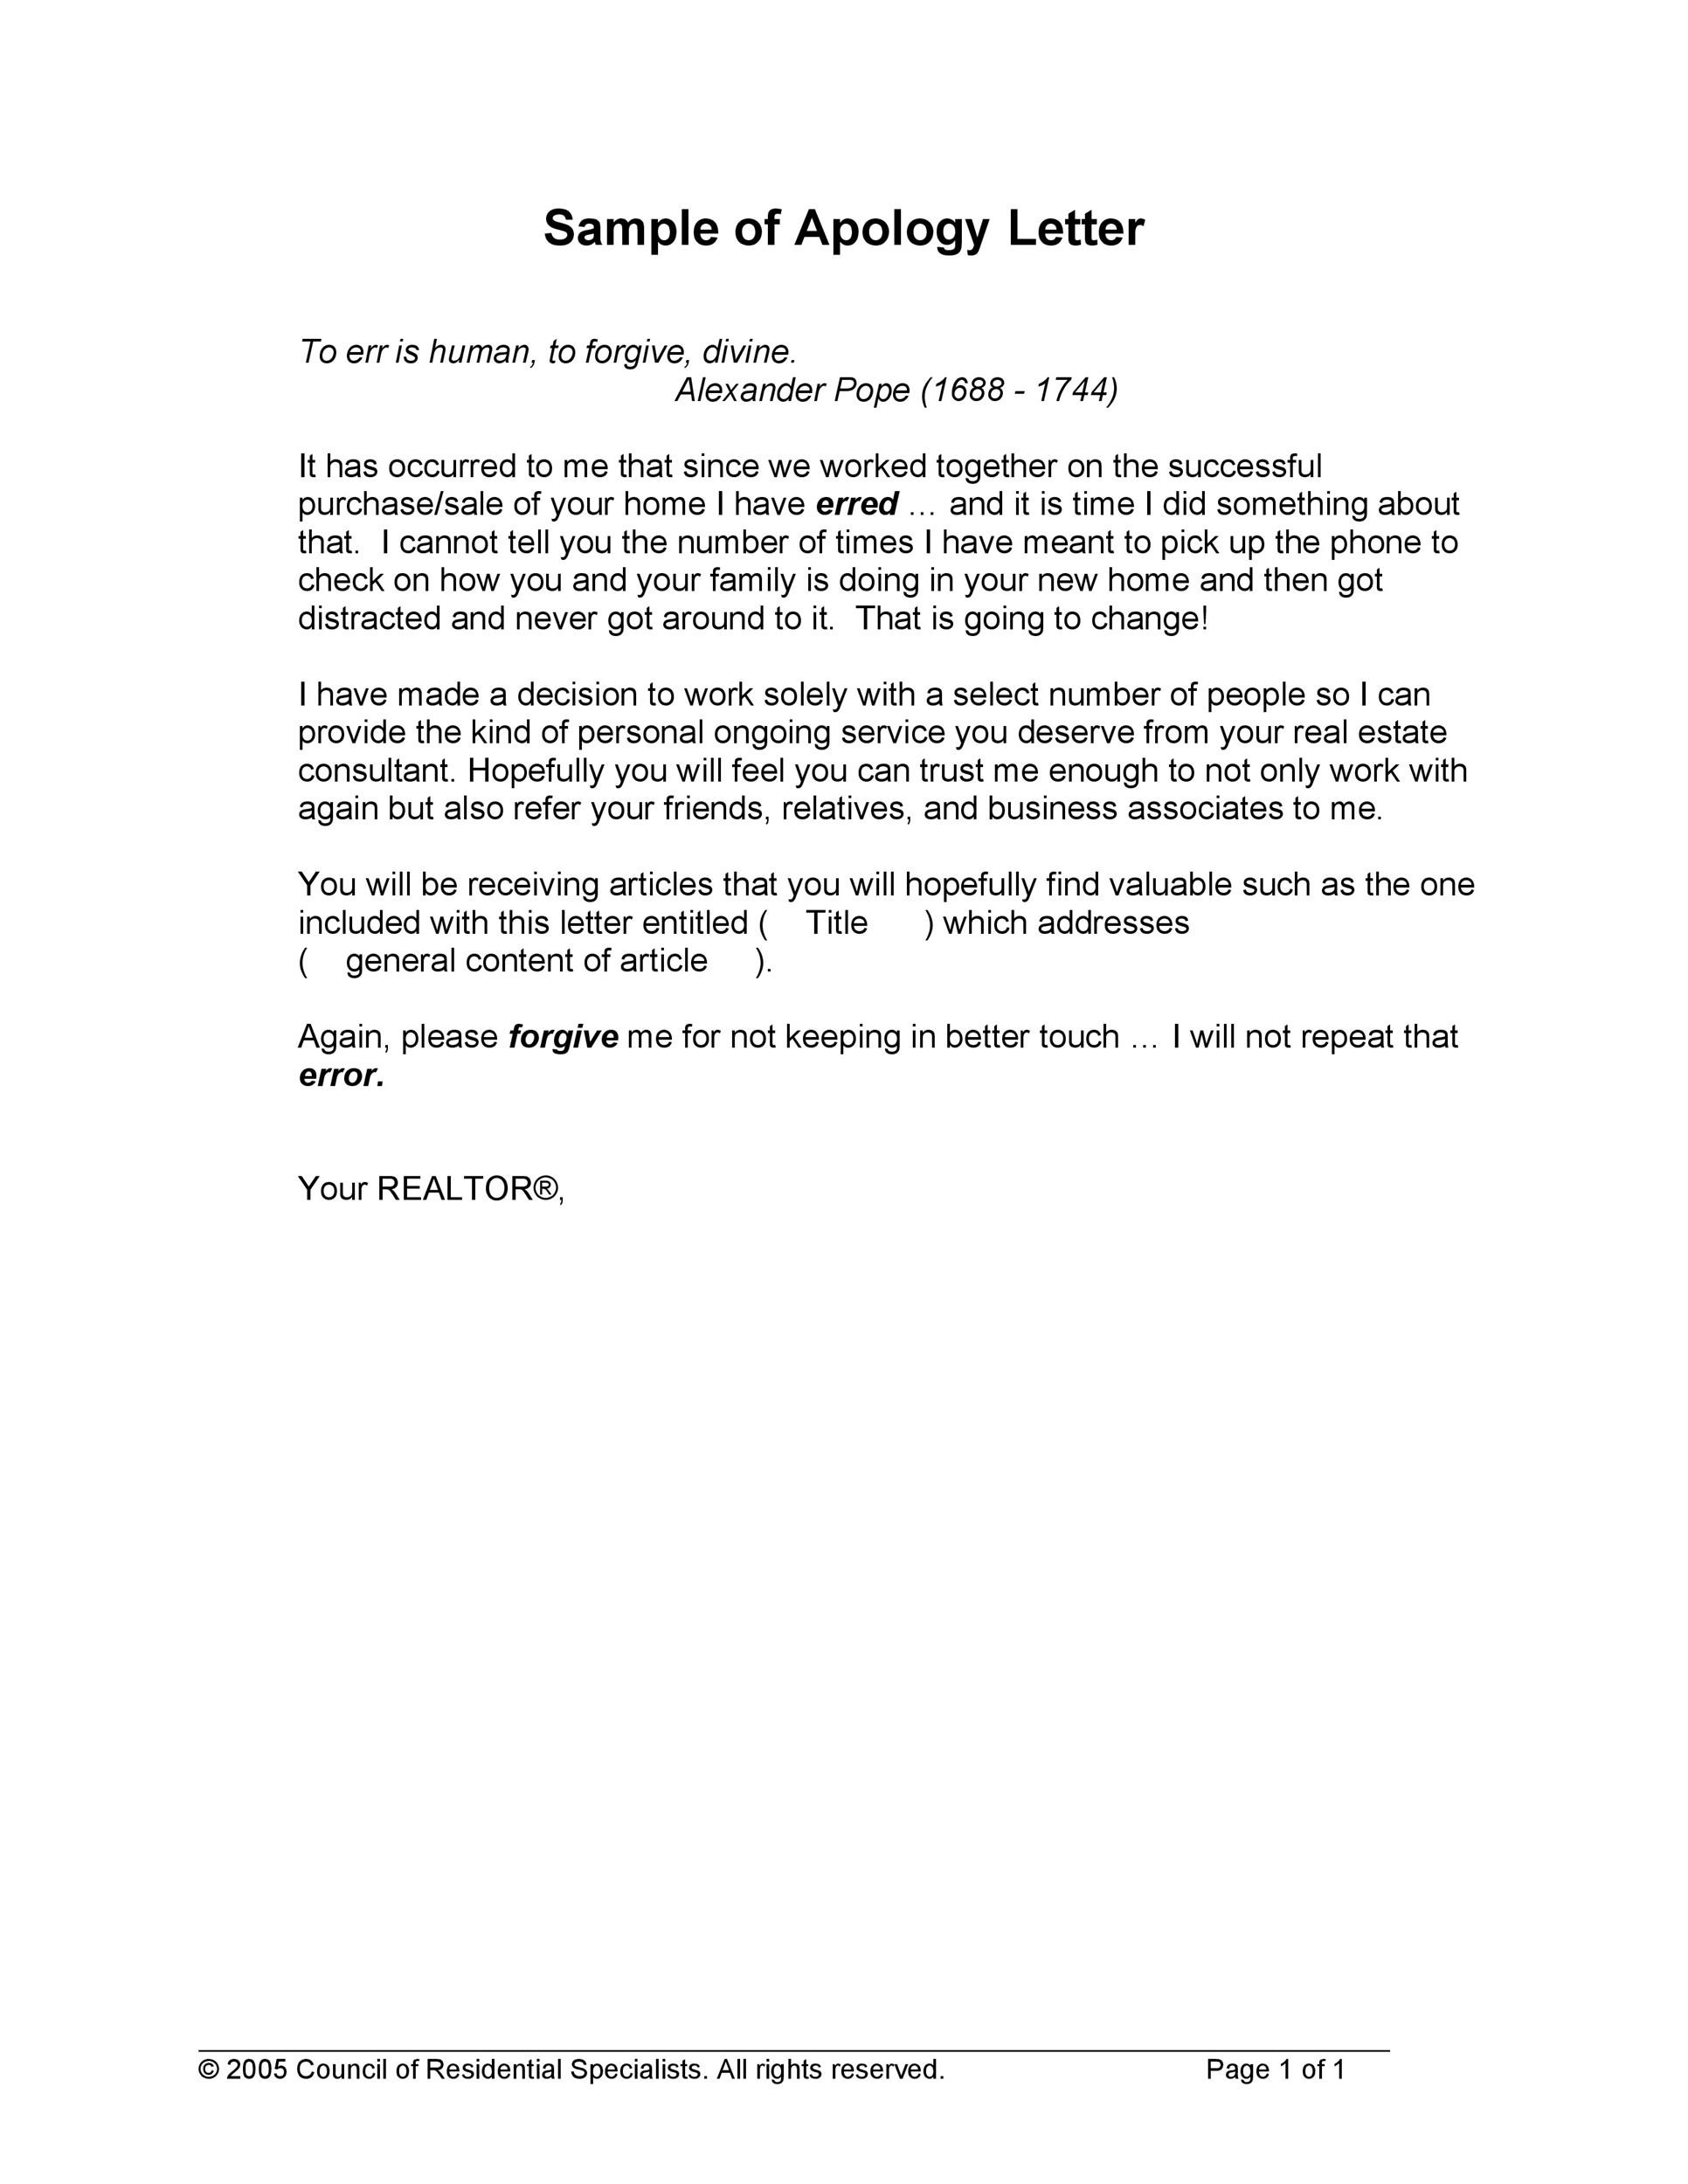 48 Useful Apology Letter Templates ( Sorry Letter Samples)